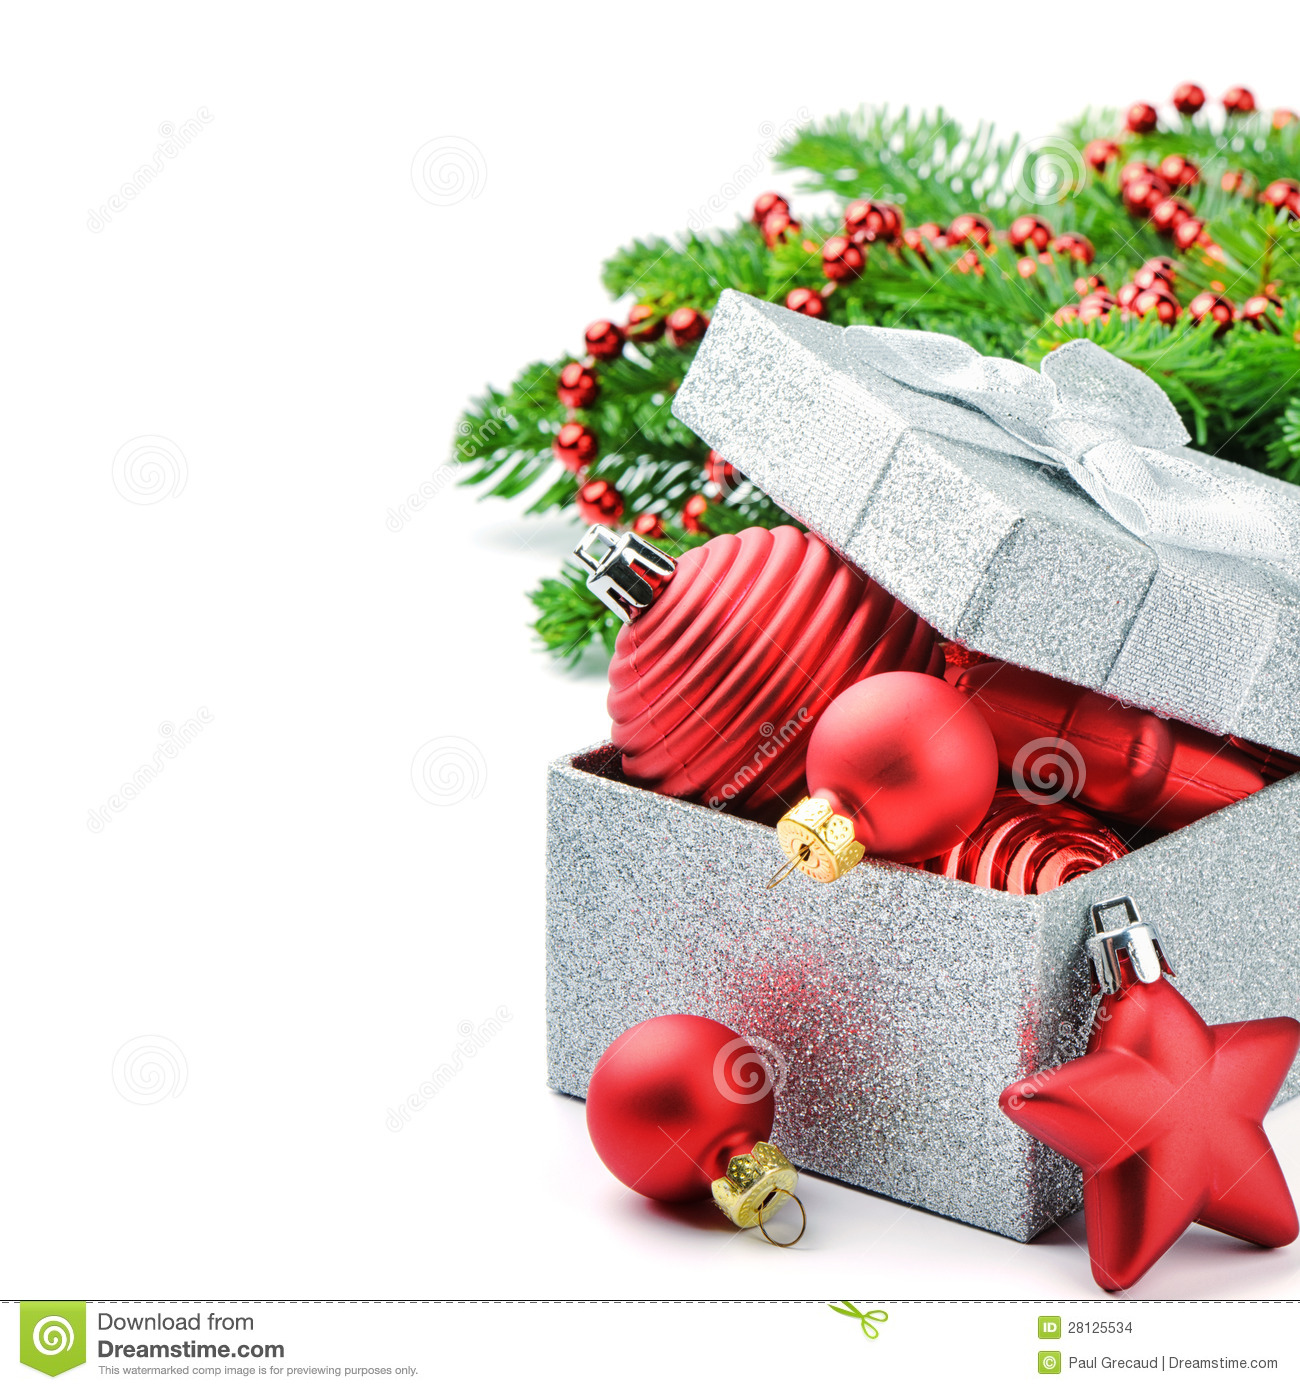 christmas gift box with festive decorations - Christmas Gift Box Decorations